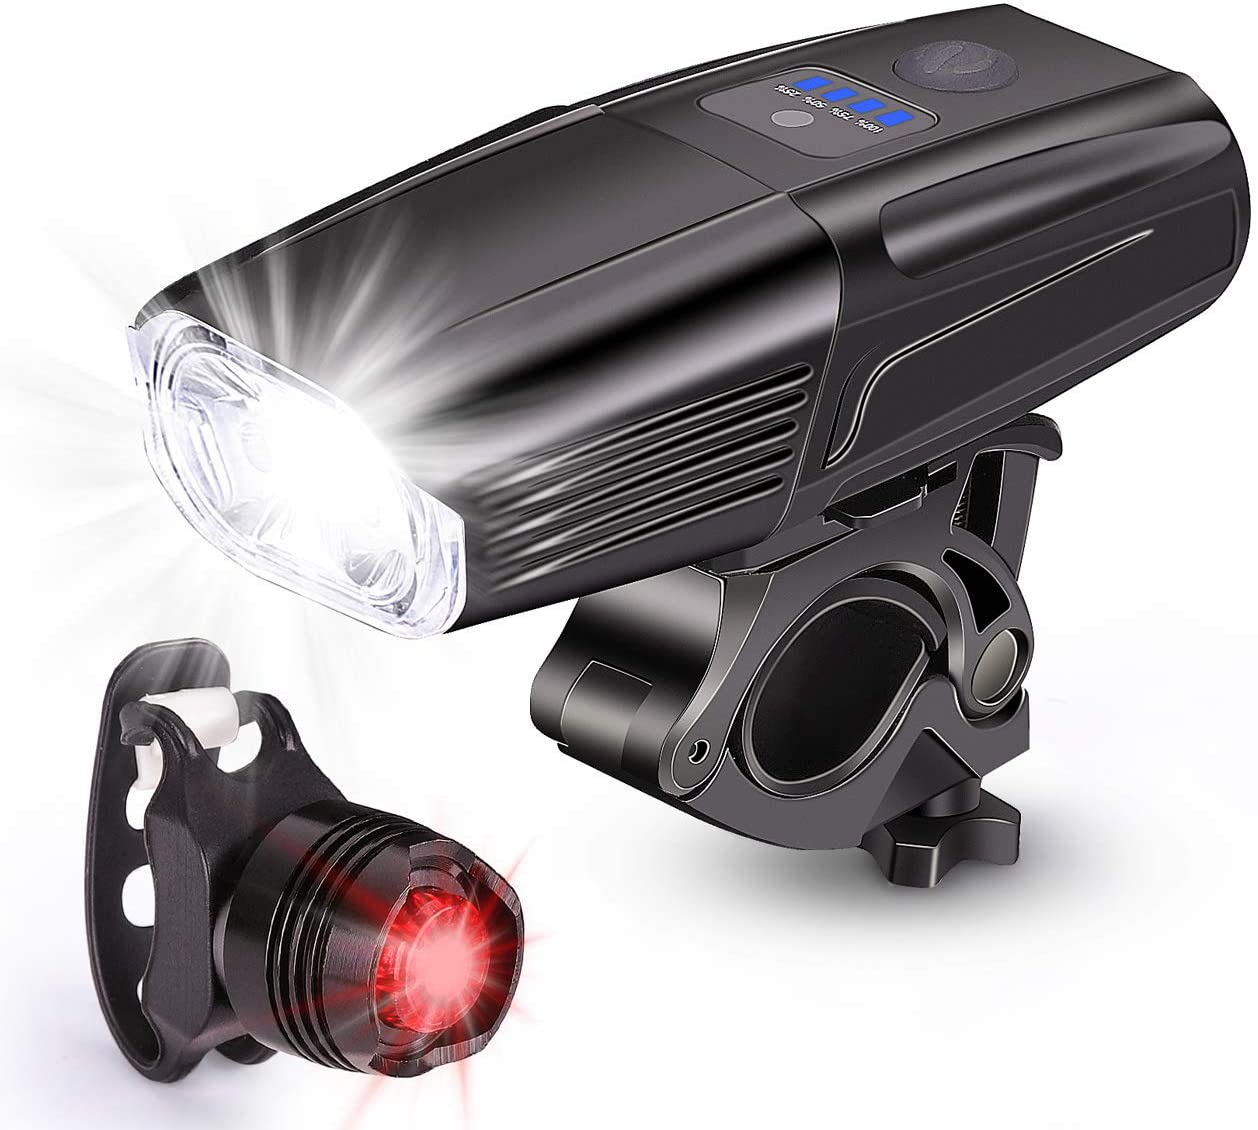 Rear Safety Flashlight DAN Waterproof 5 LED Lamp Bike Bicycle Front Head Light